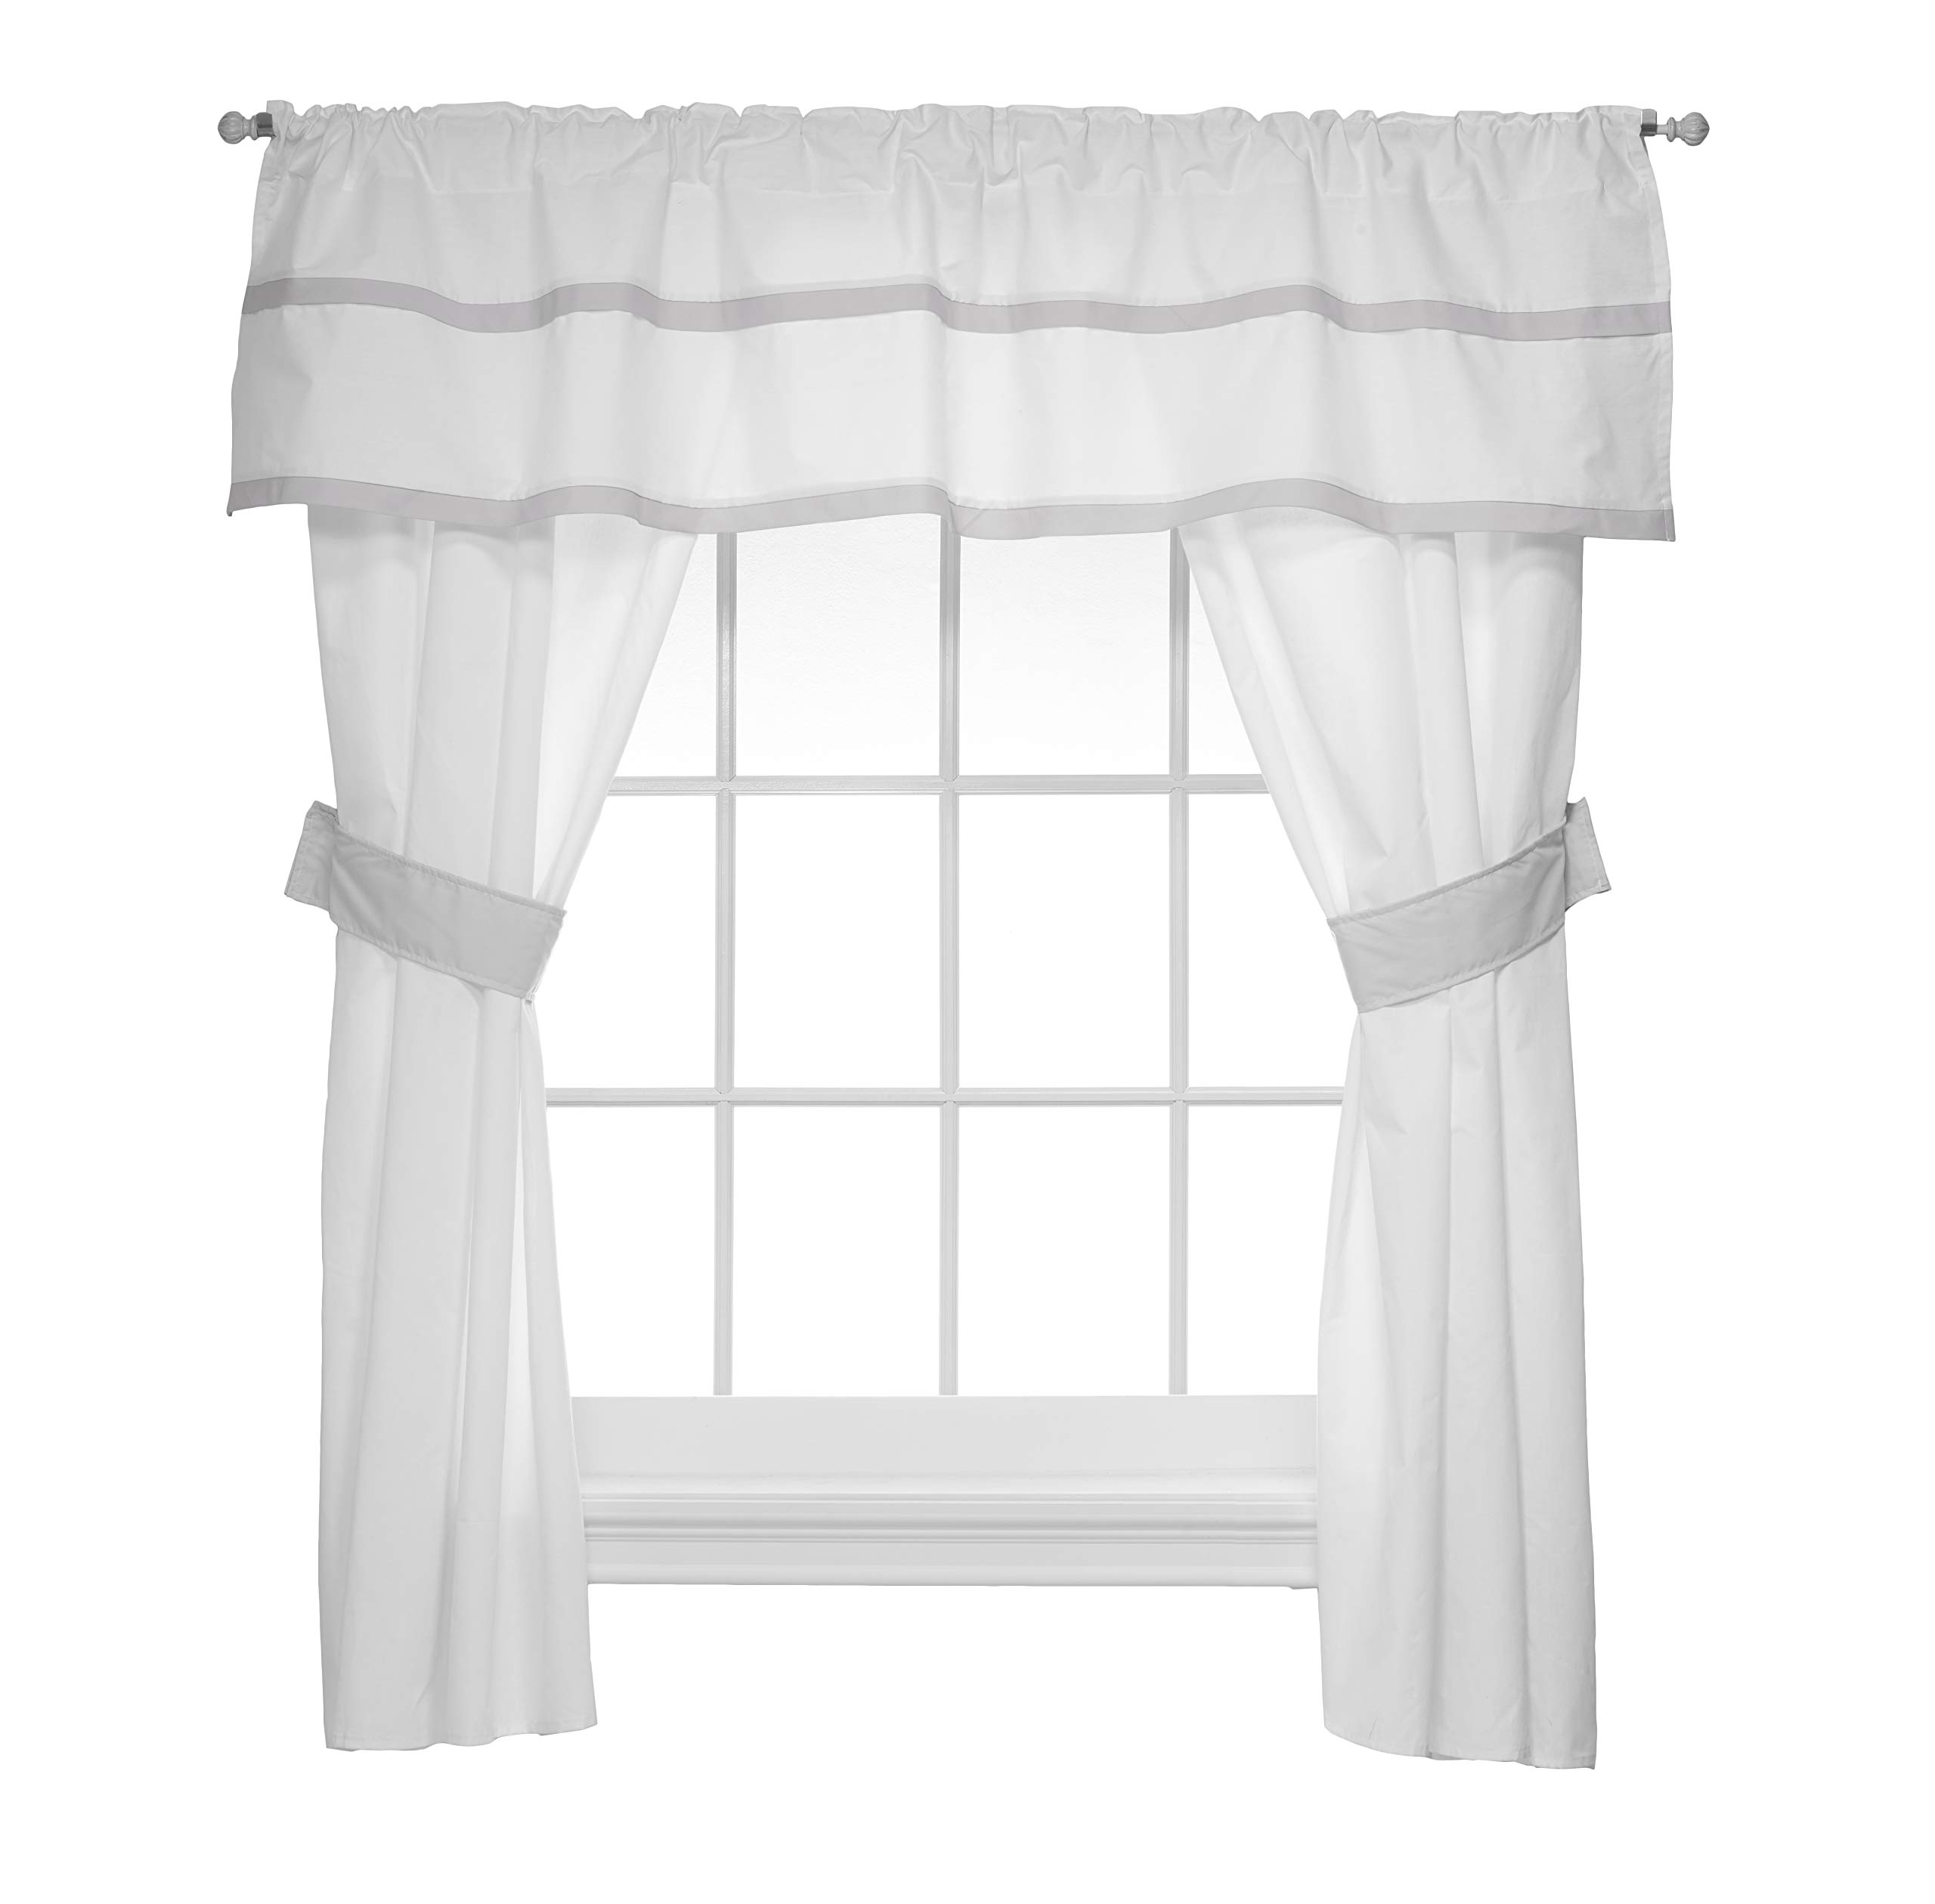 Baby Doll Medallion 5 Piece Window Valance and Curtain Set, Grey by Baby Doll